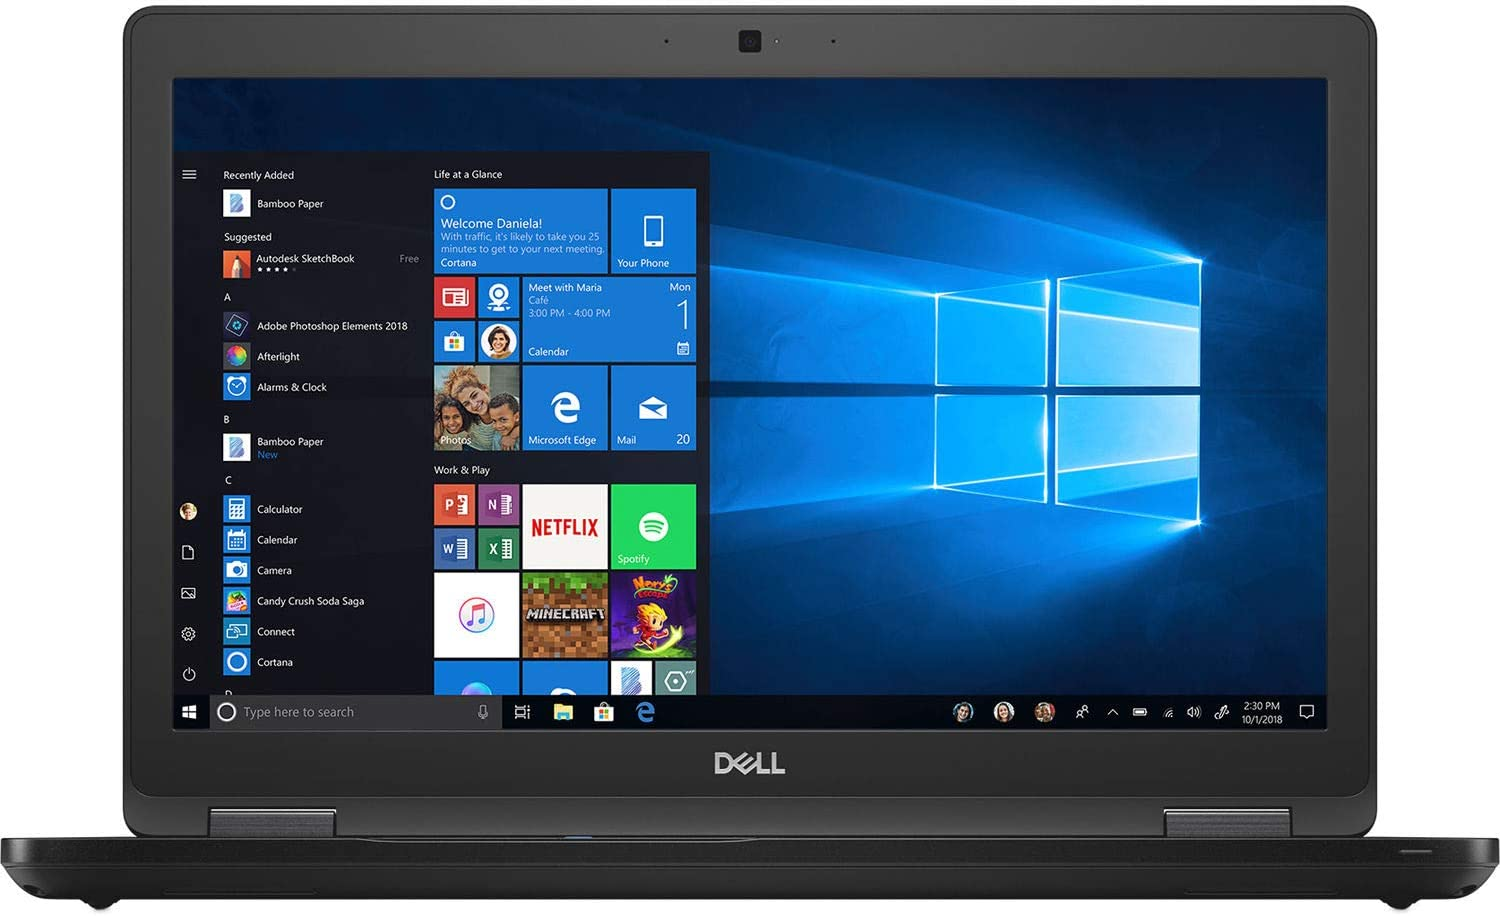 Dell Precision 3530 - i5-8300H - 15.6 FHD - 8GB - 256GB SSD - NV-4GB (P600) - Windows 10 (Renewed)